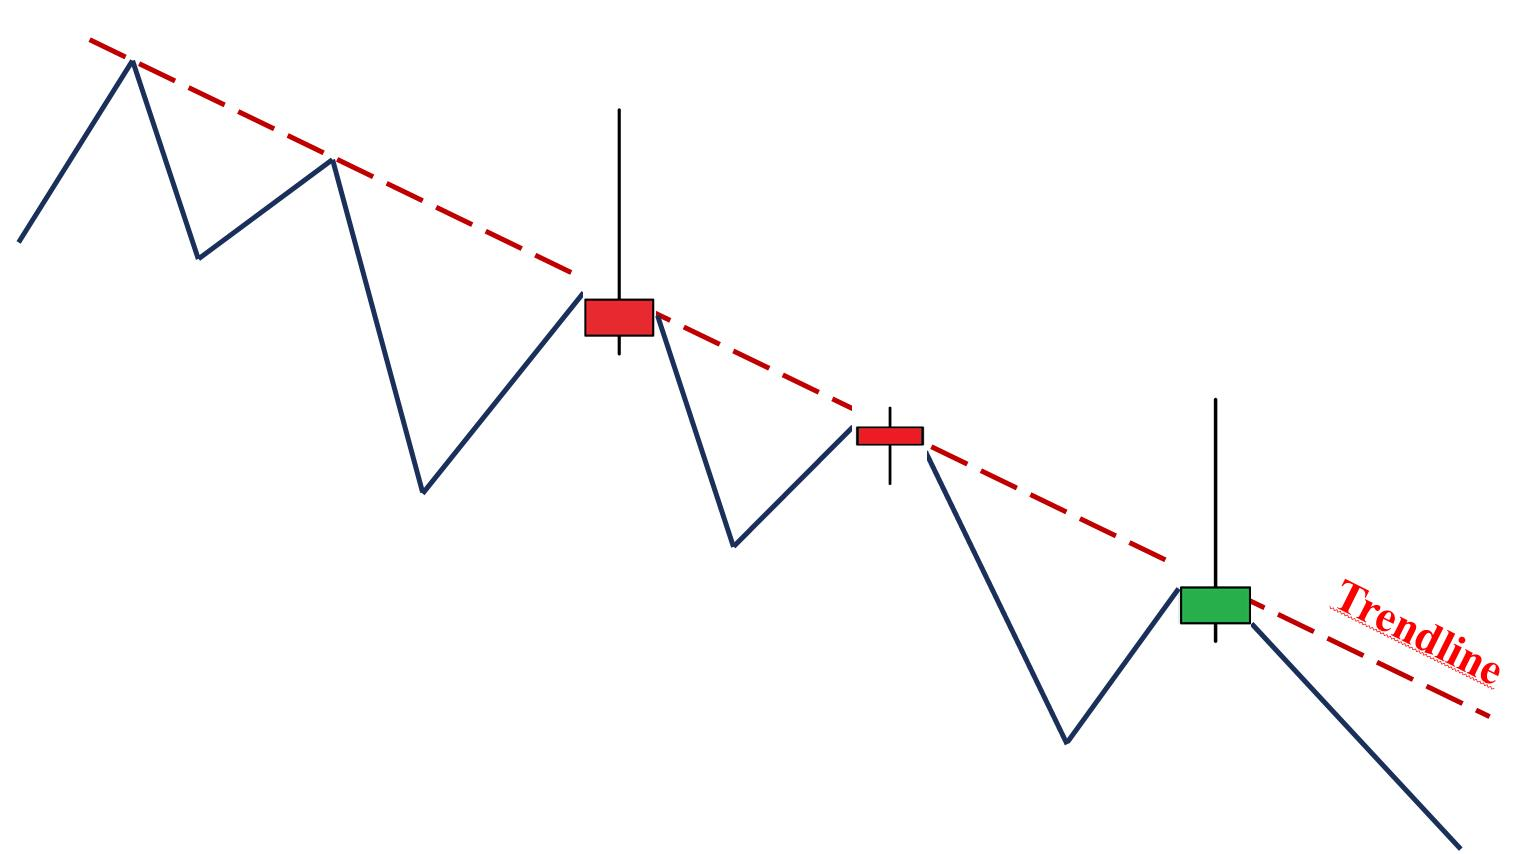 Trendline combined with Doji and Bearish Pin Bar candlesticks